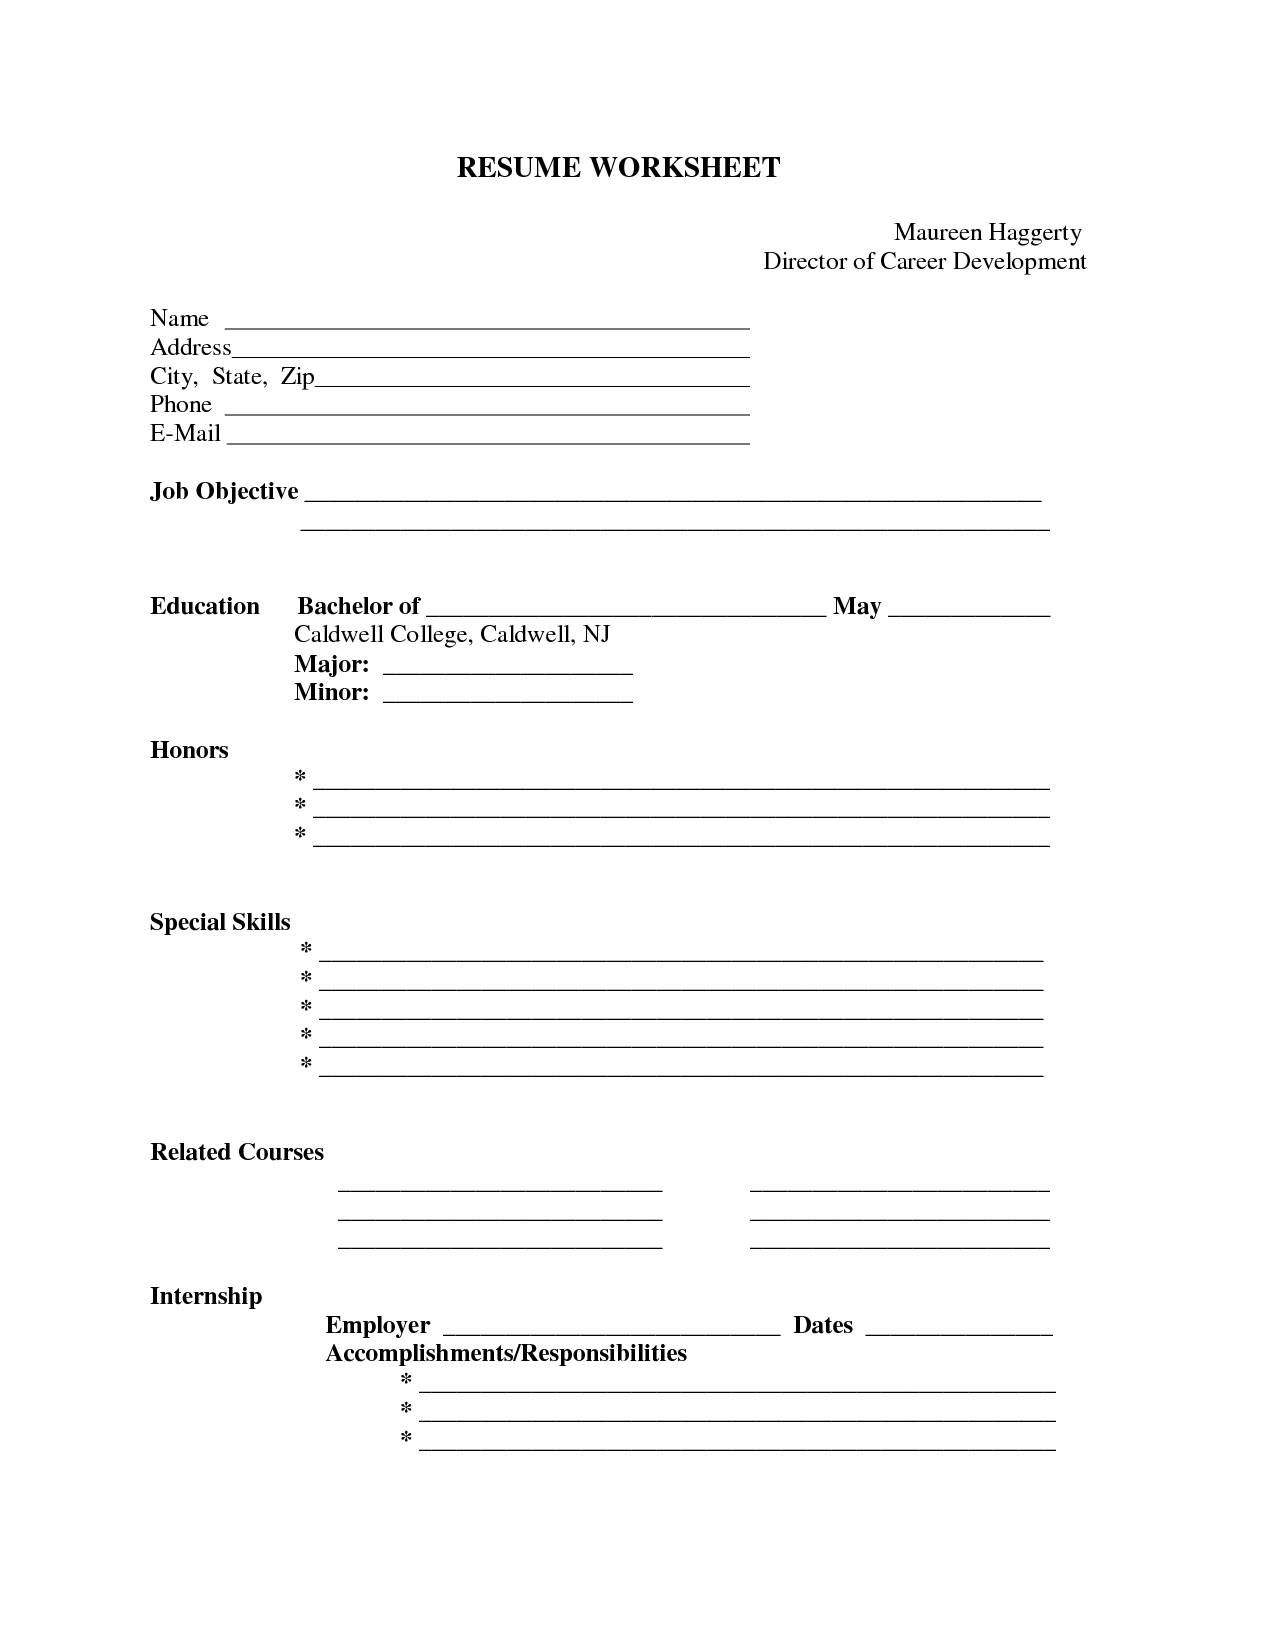 Free Printable Blank Resume Forms    Http://www.resumecareer.info/free Printable Blank Resume Forms 12/